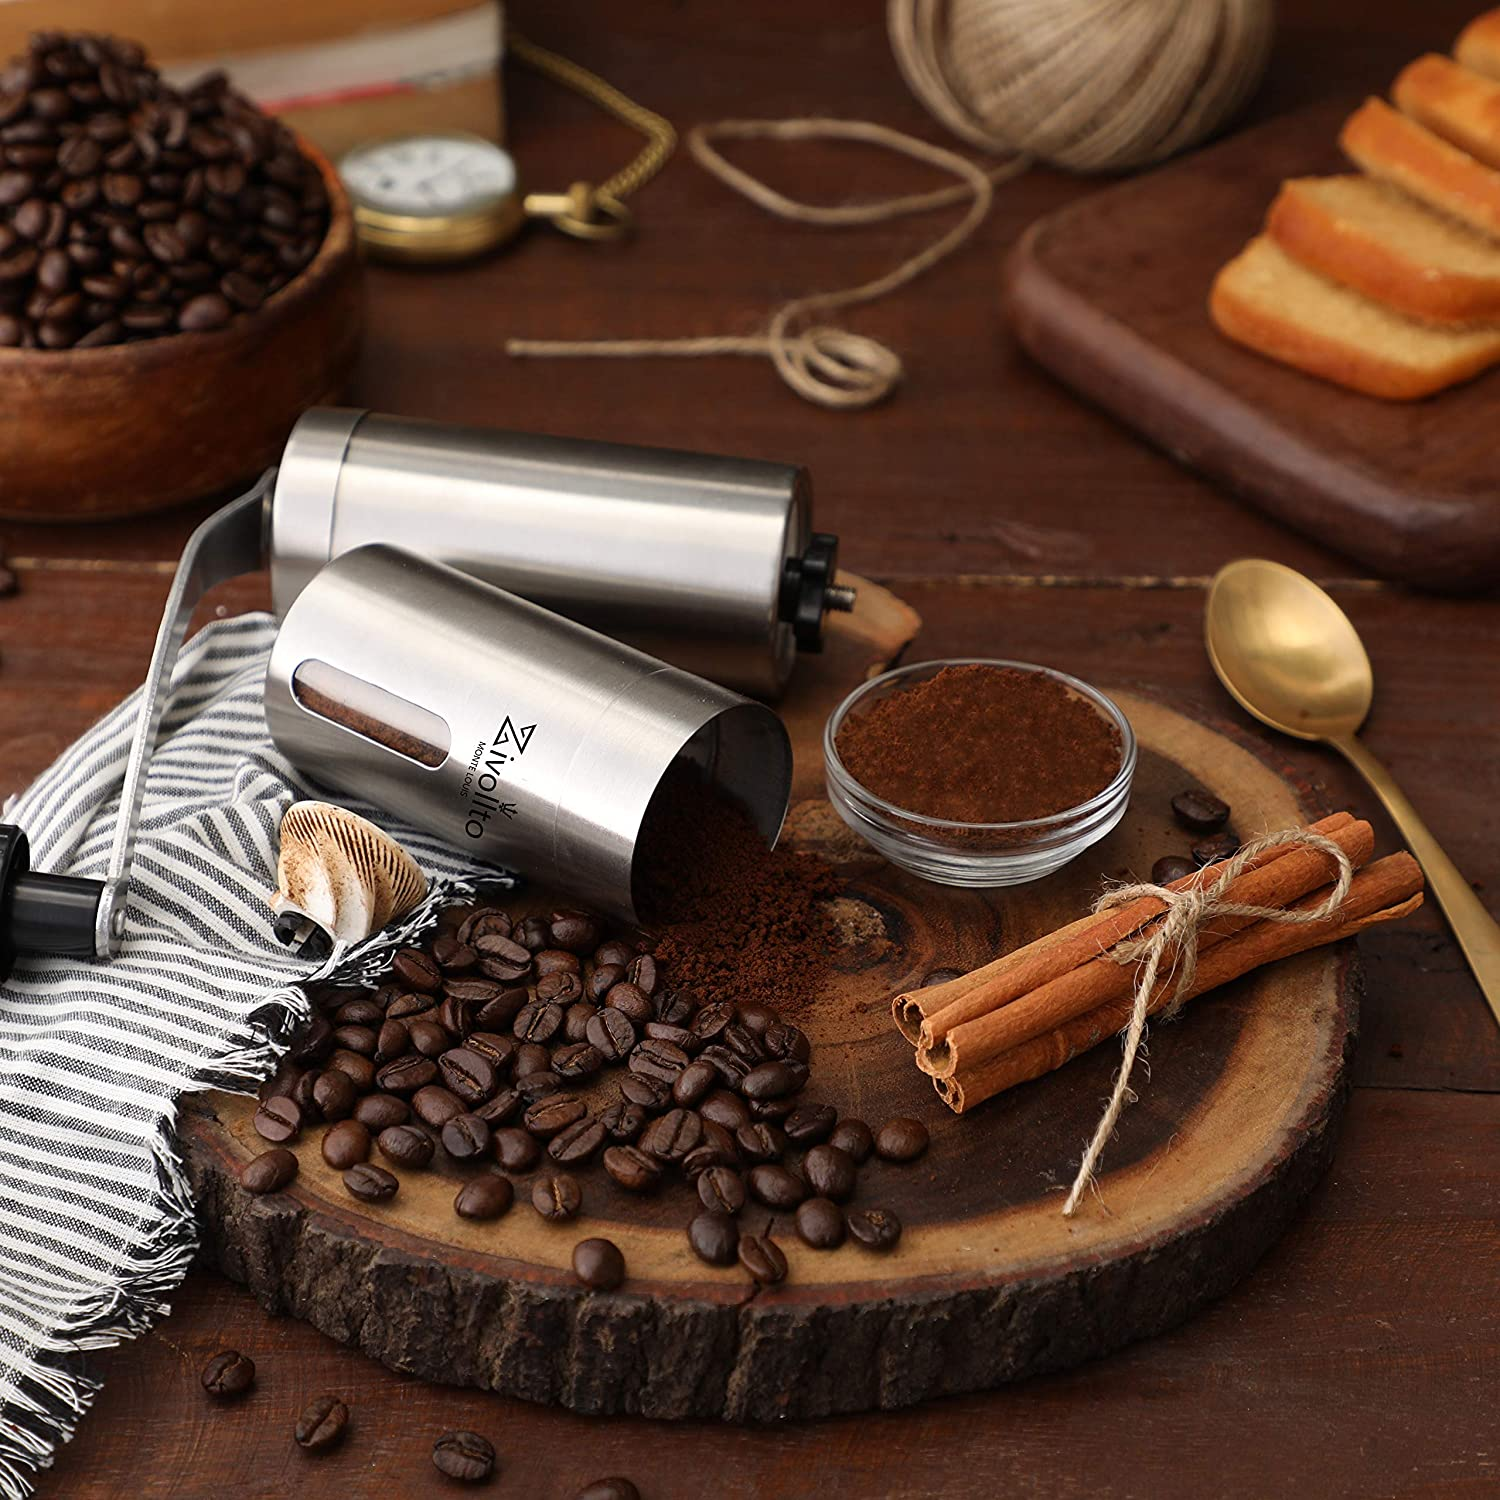 Unique Design Conical Ceramic Burr Mill for Easy Grind Zivollto Manual Coffee Grinder Made with Supreme Quality Stainless Steel Strong and Heavy Duty Built for Travel Hand Sized and Portable